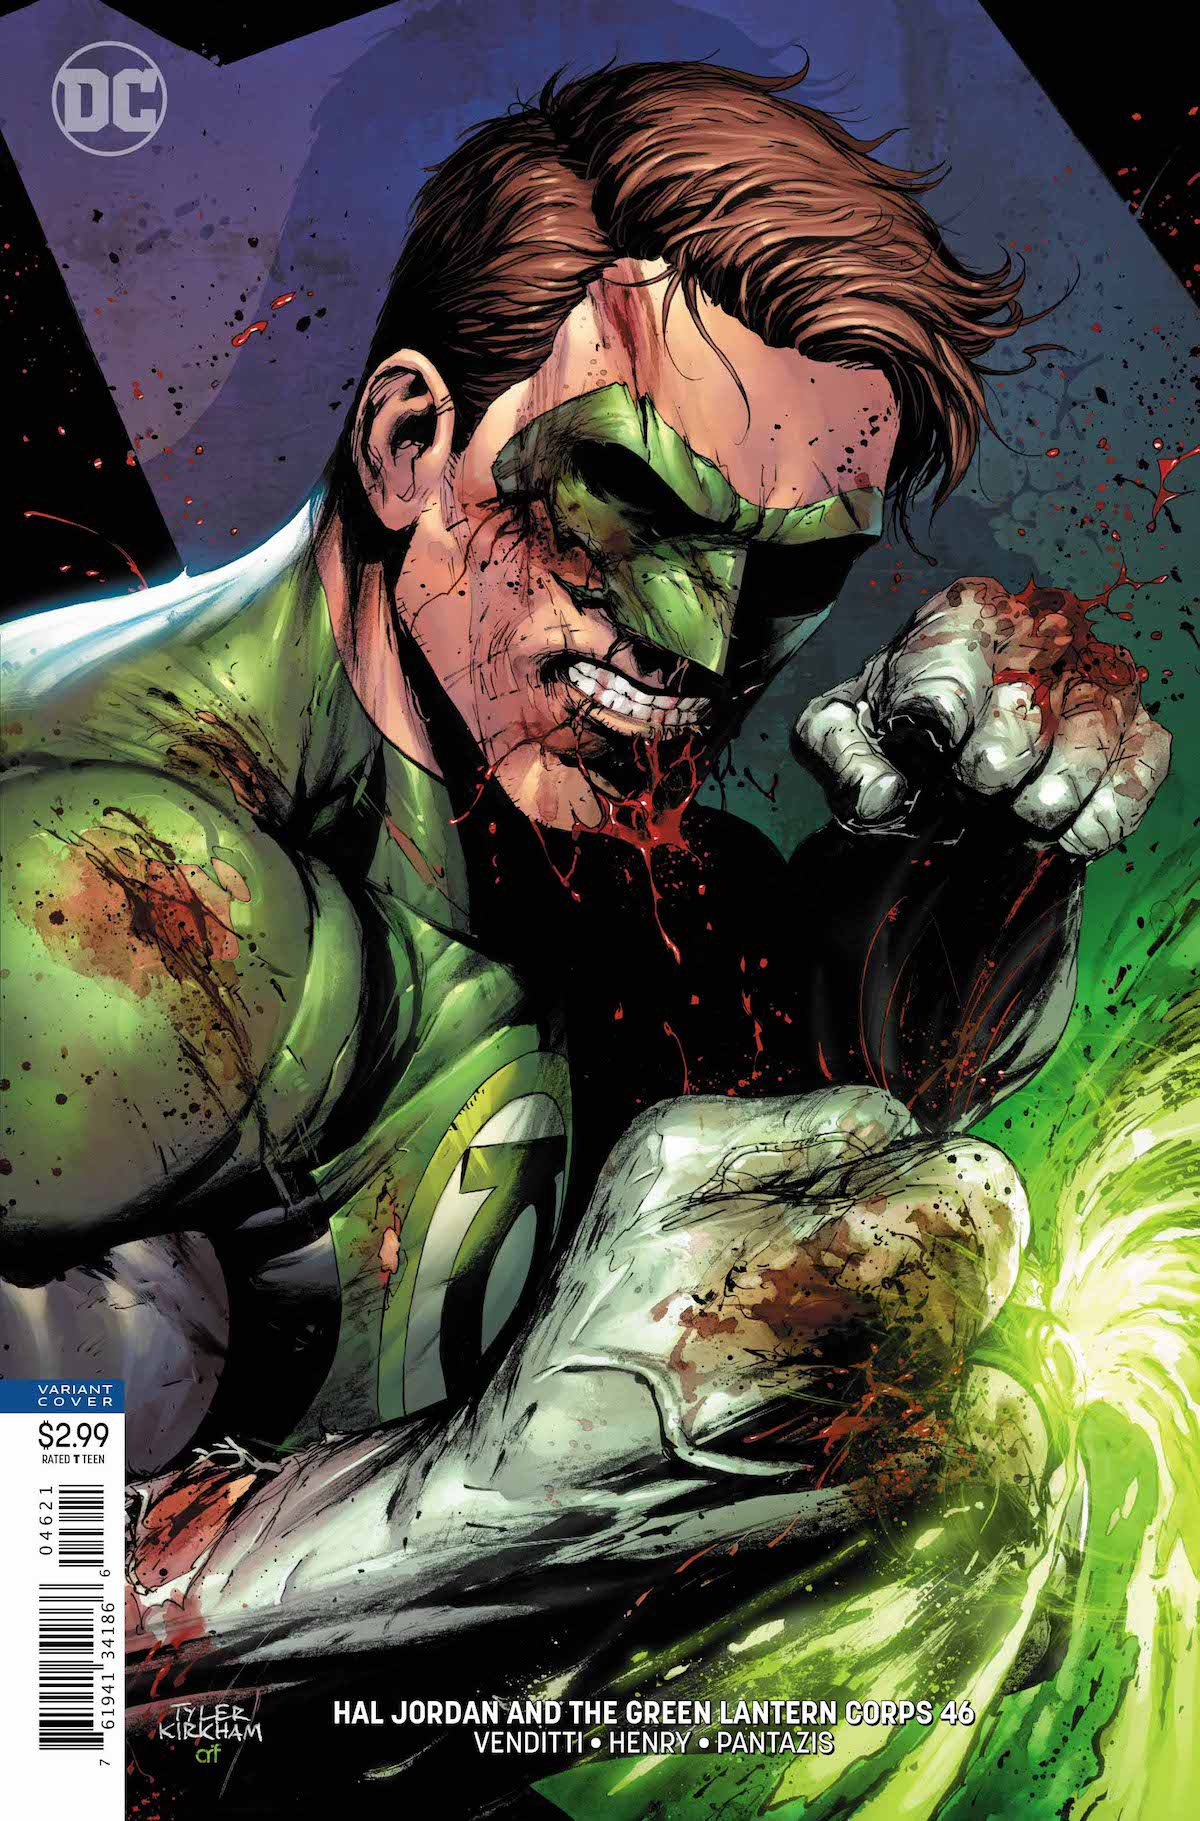 Hal Jordan and the Green Lantern Corps #46 cover